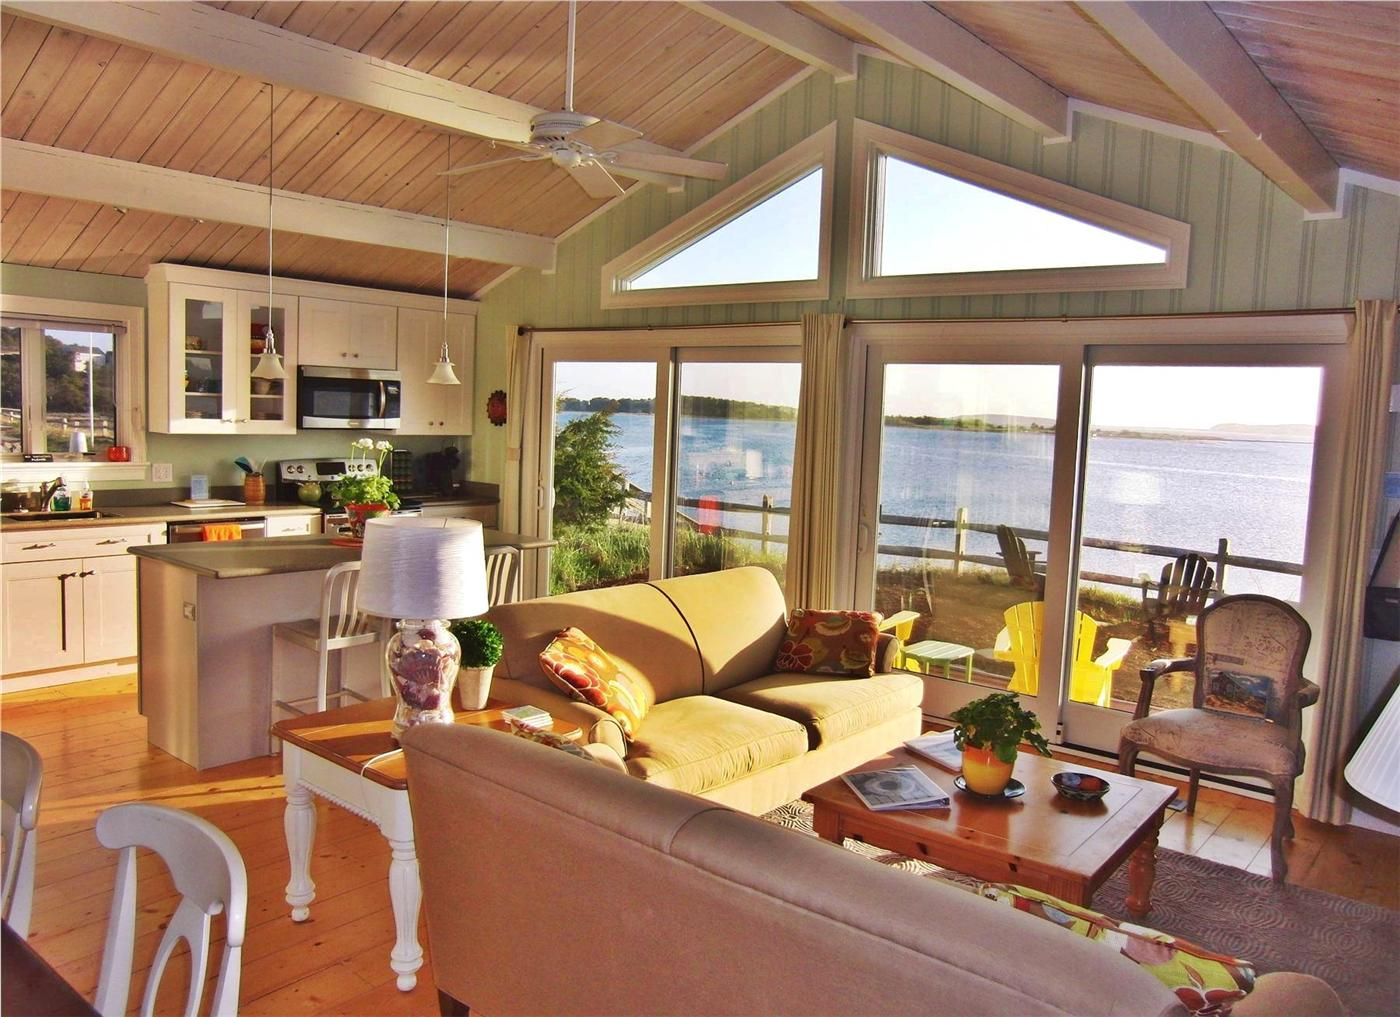 Wellfleet vacation rental home in cape cod ma 02667 25 for Cabin rentals in cape cod ma